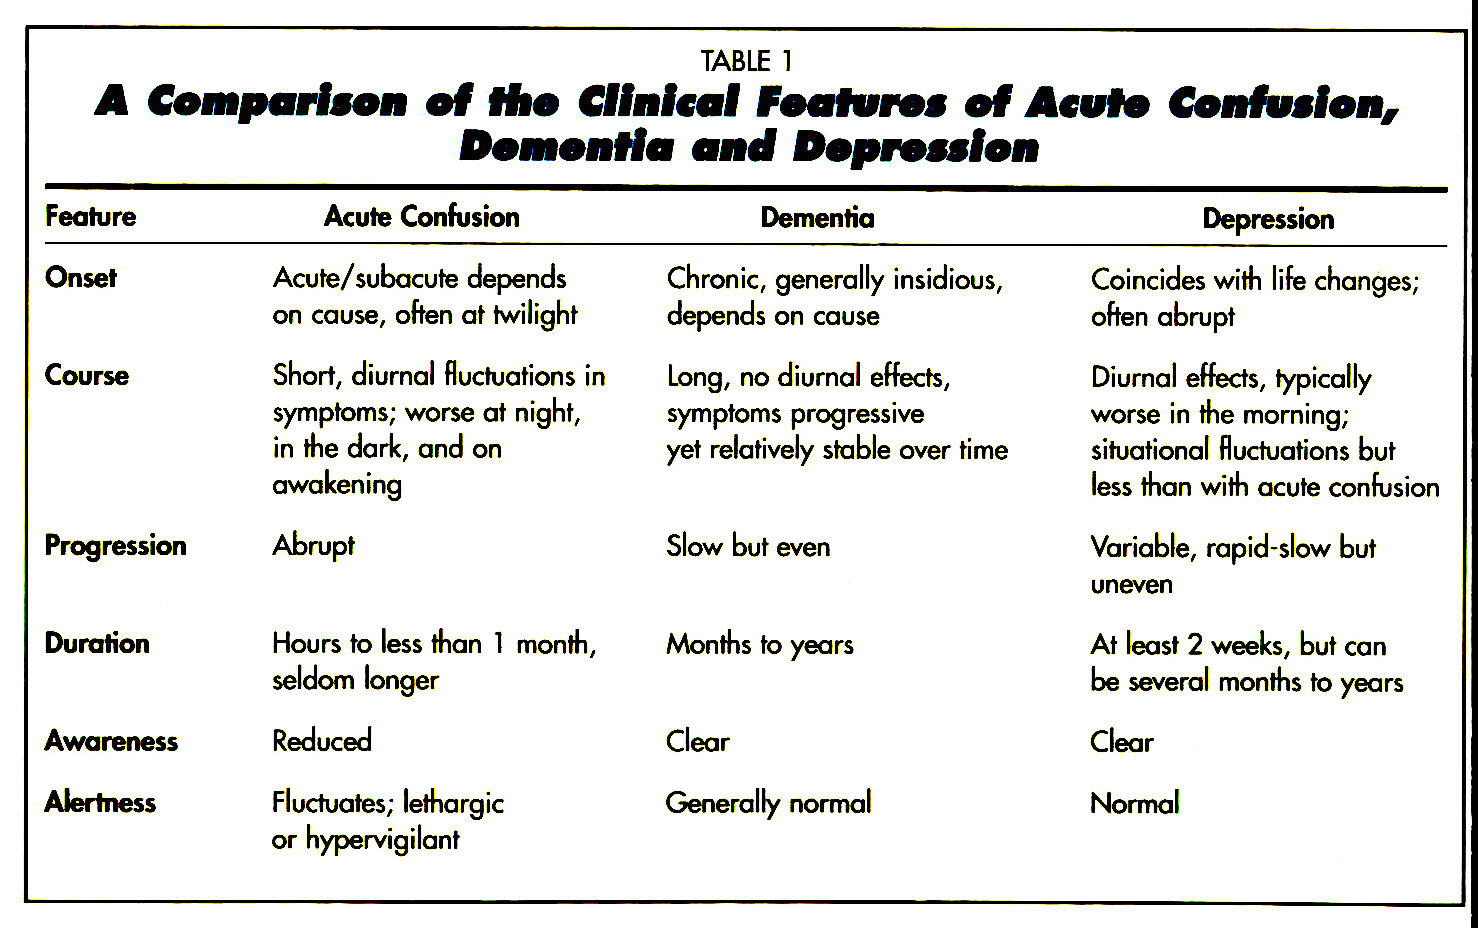 TABLE 1A Comparison of Mia Clinical Feature* of Acute Confusion, Dementia and Depression